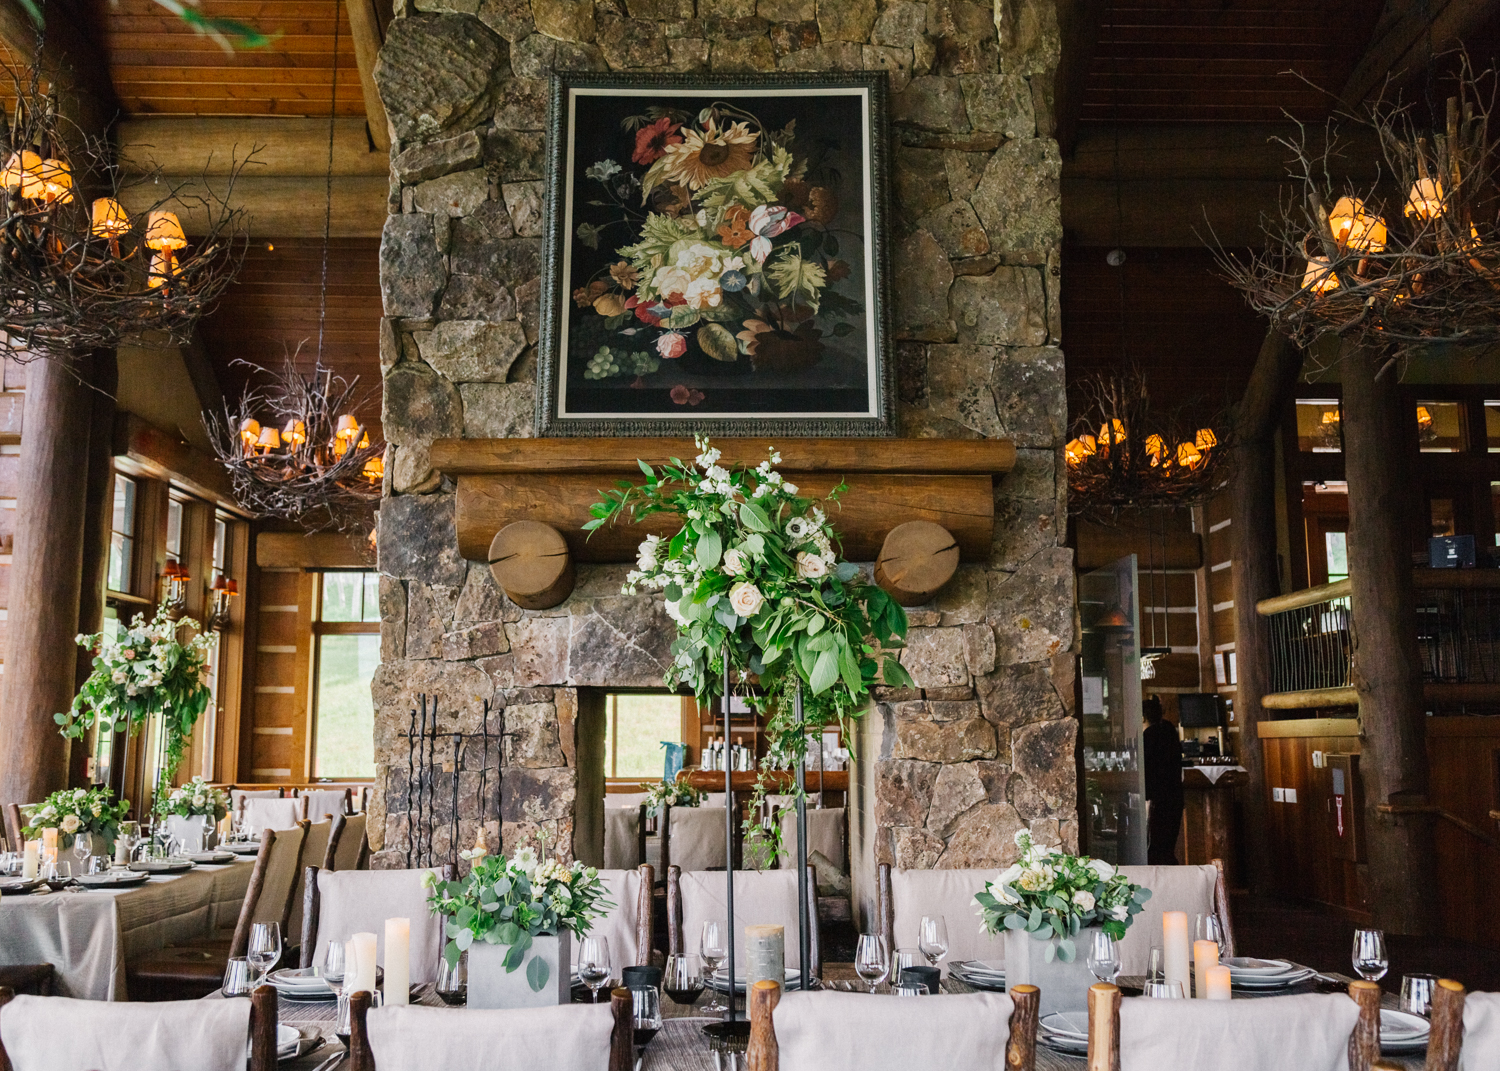 Destination gay wedding at Zach's Cabin at Bachelor Gulch in Beaver Creek, Colorado. Photo: Cat Mayer